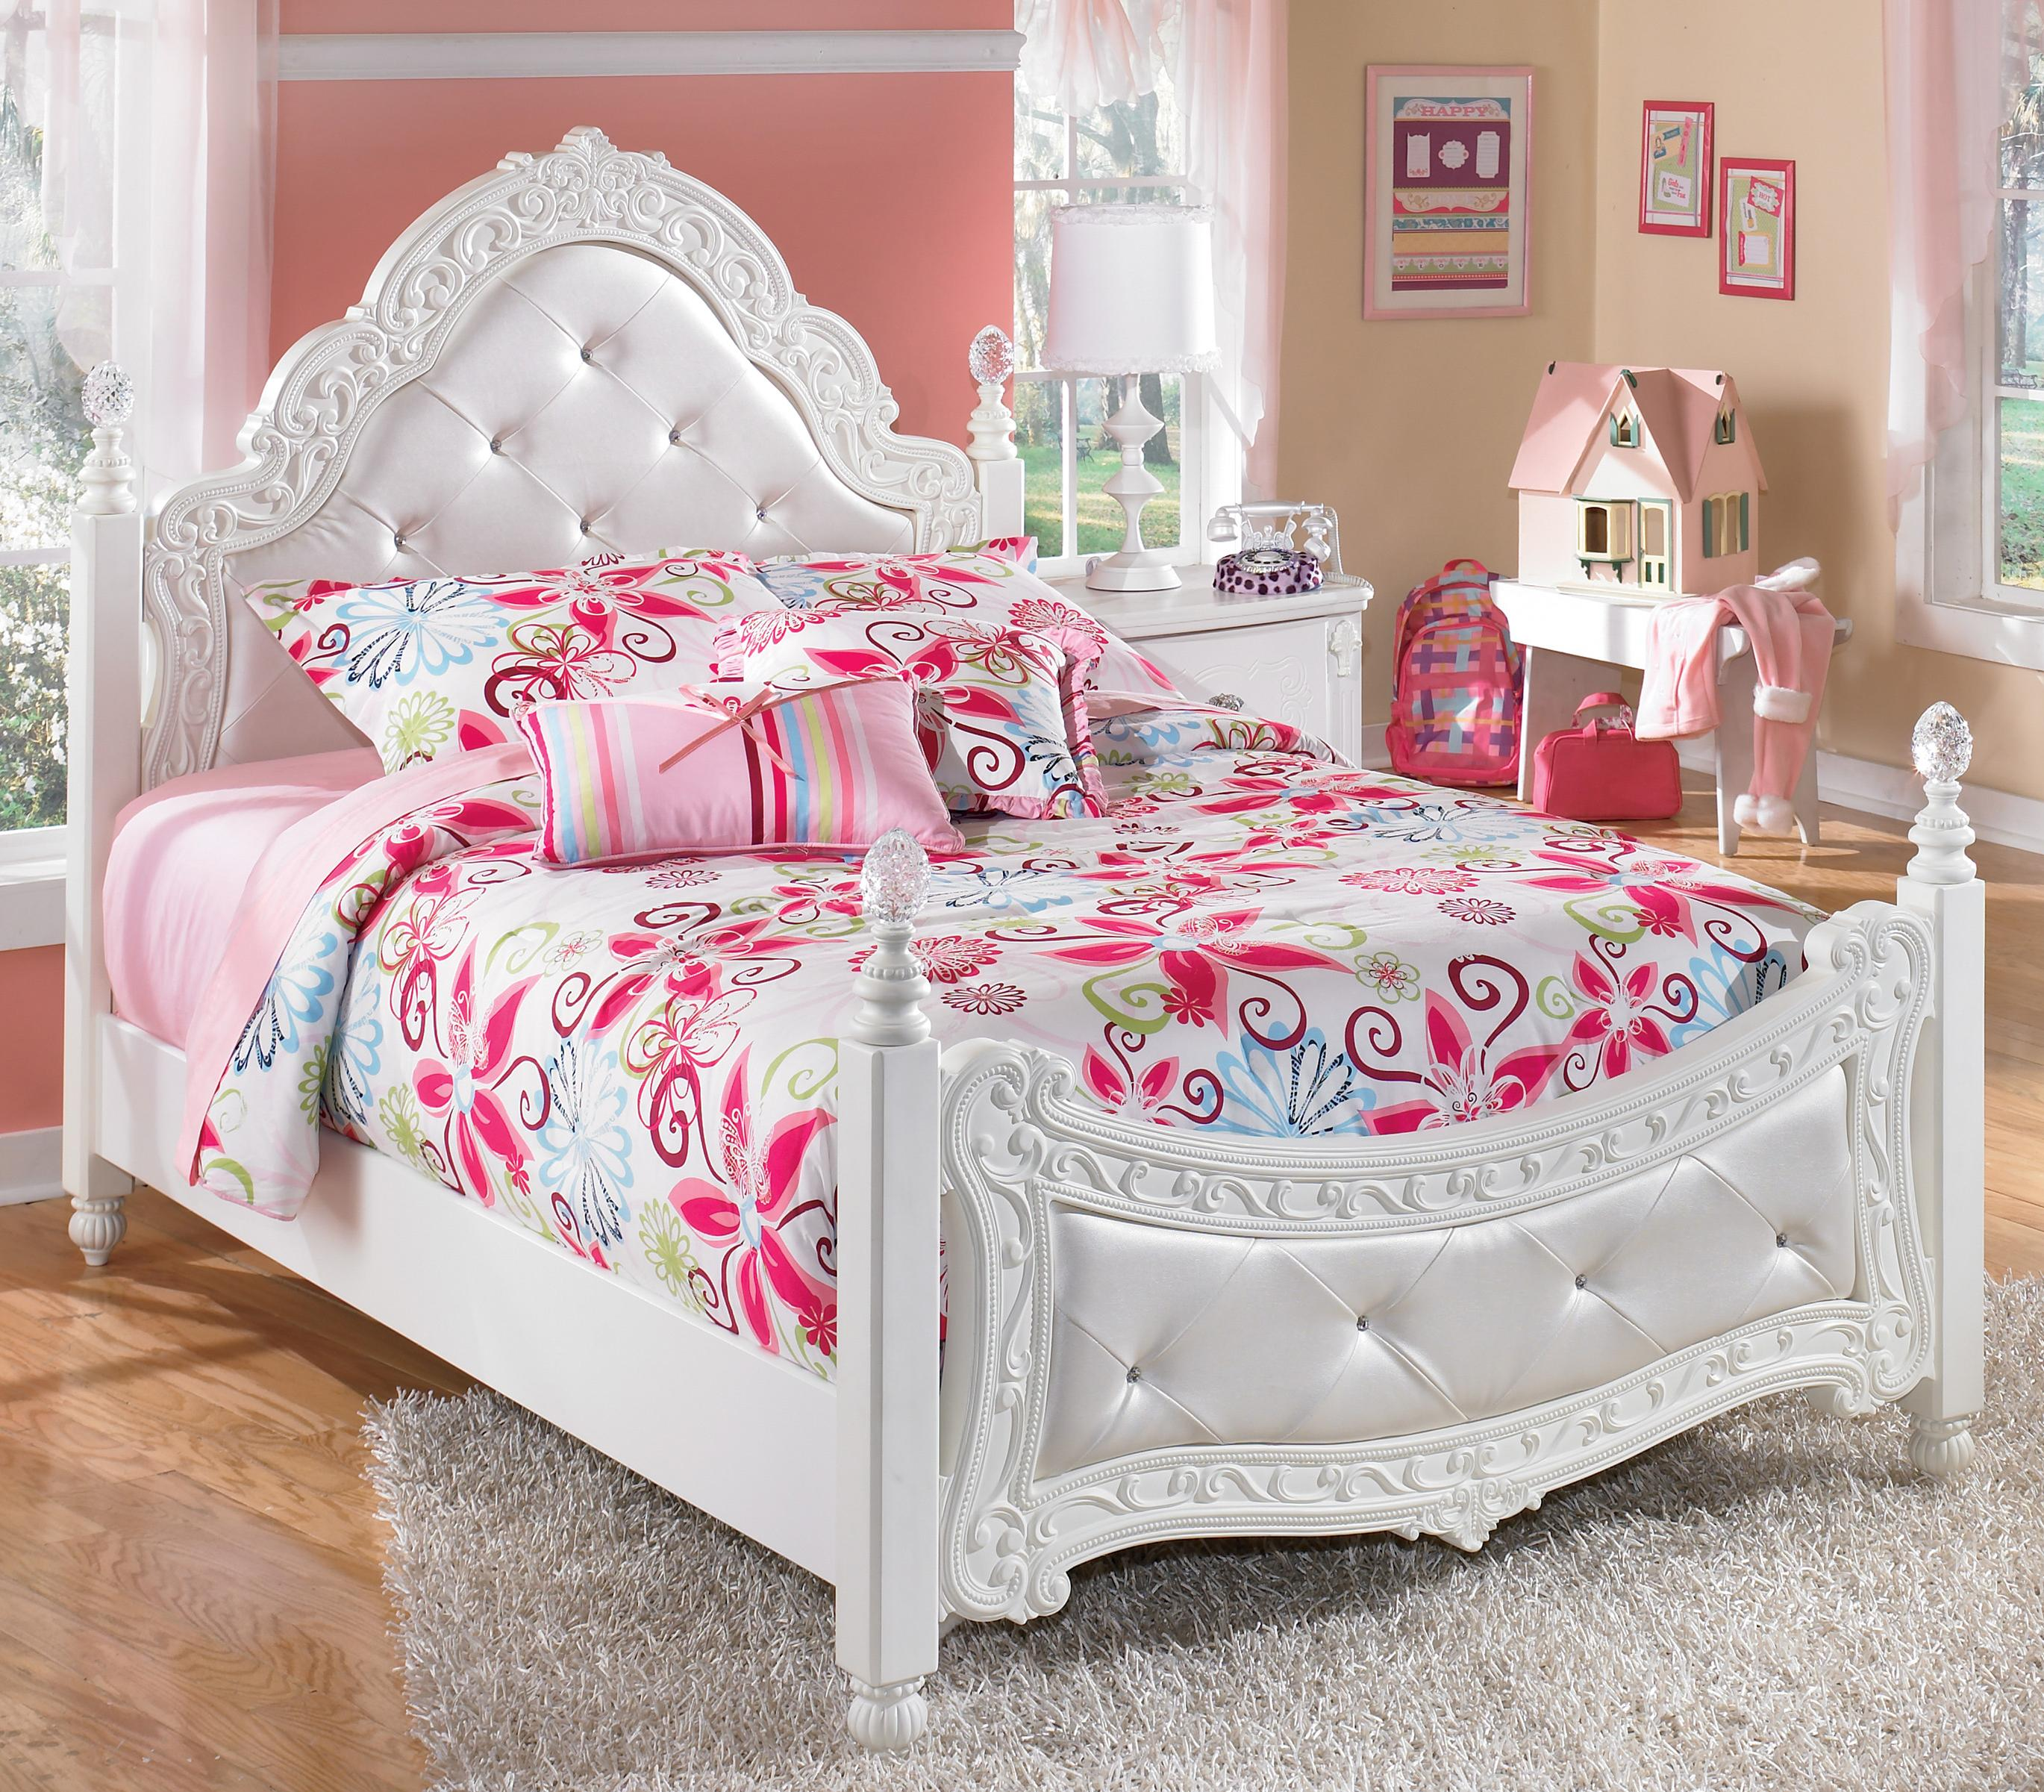 Signature Design By Ashley Exquisite Full Ornate Poster Bed With Tufted Headboard Footboard Royal Furniture Upholstered Beds